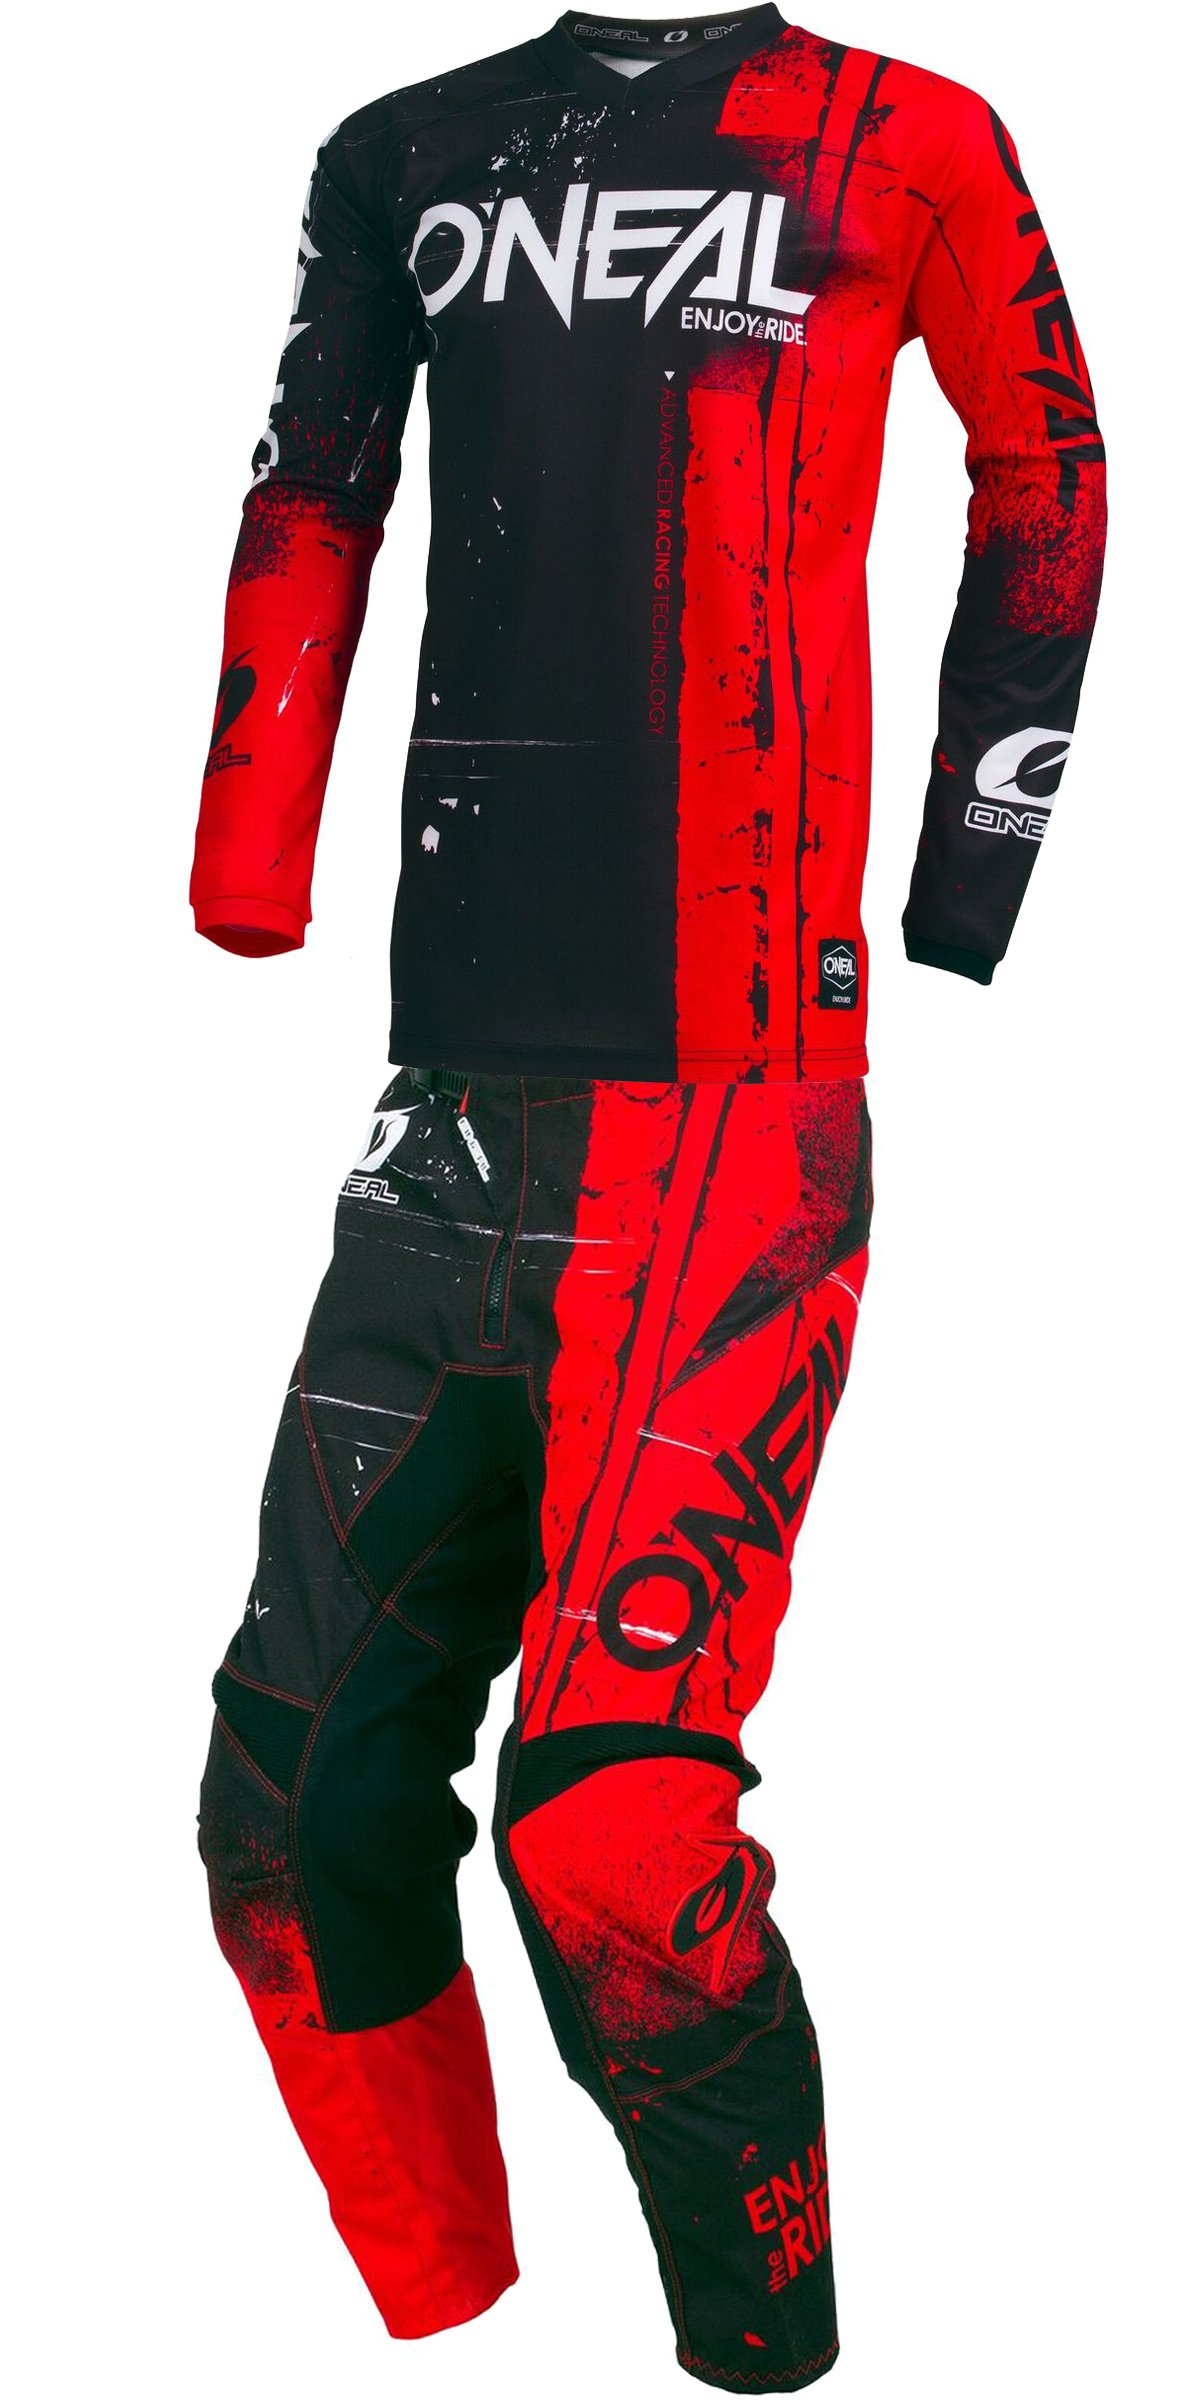 O'Neal - 2019 Element Shred (Youth RED Y-XLarge/Y-28W) MX Riding Gear Combo Set, Motocross Off-Road Dirt Bike Jersey & Pant